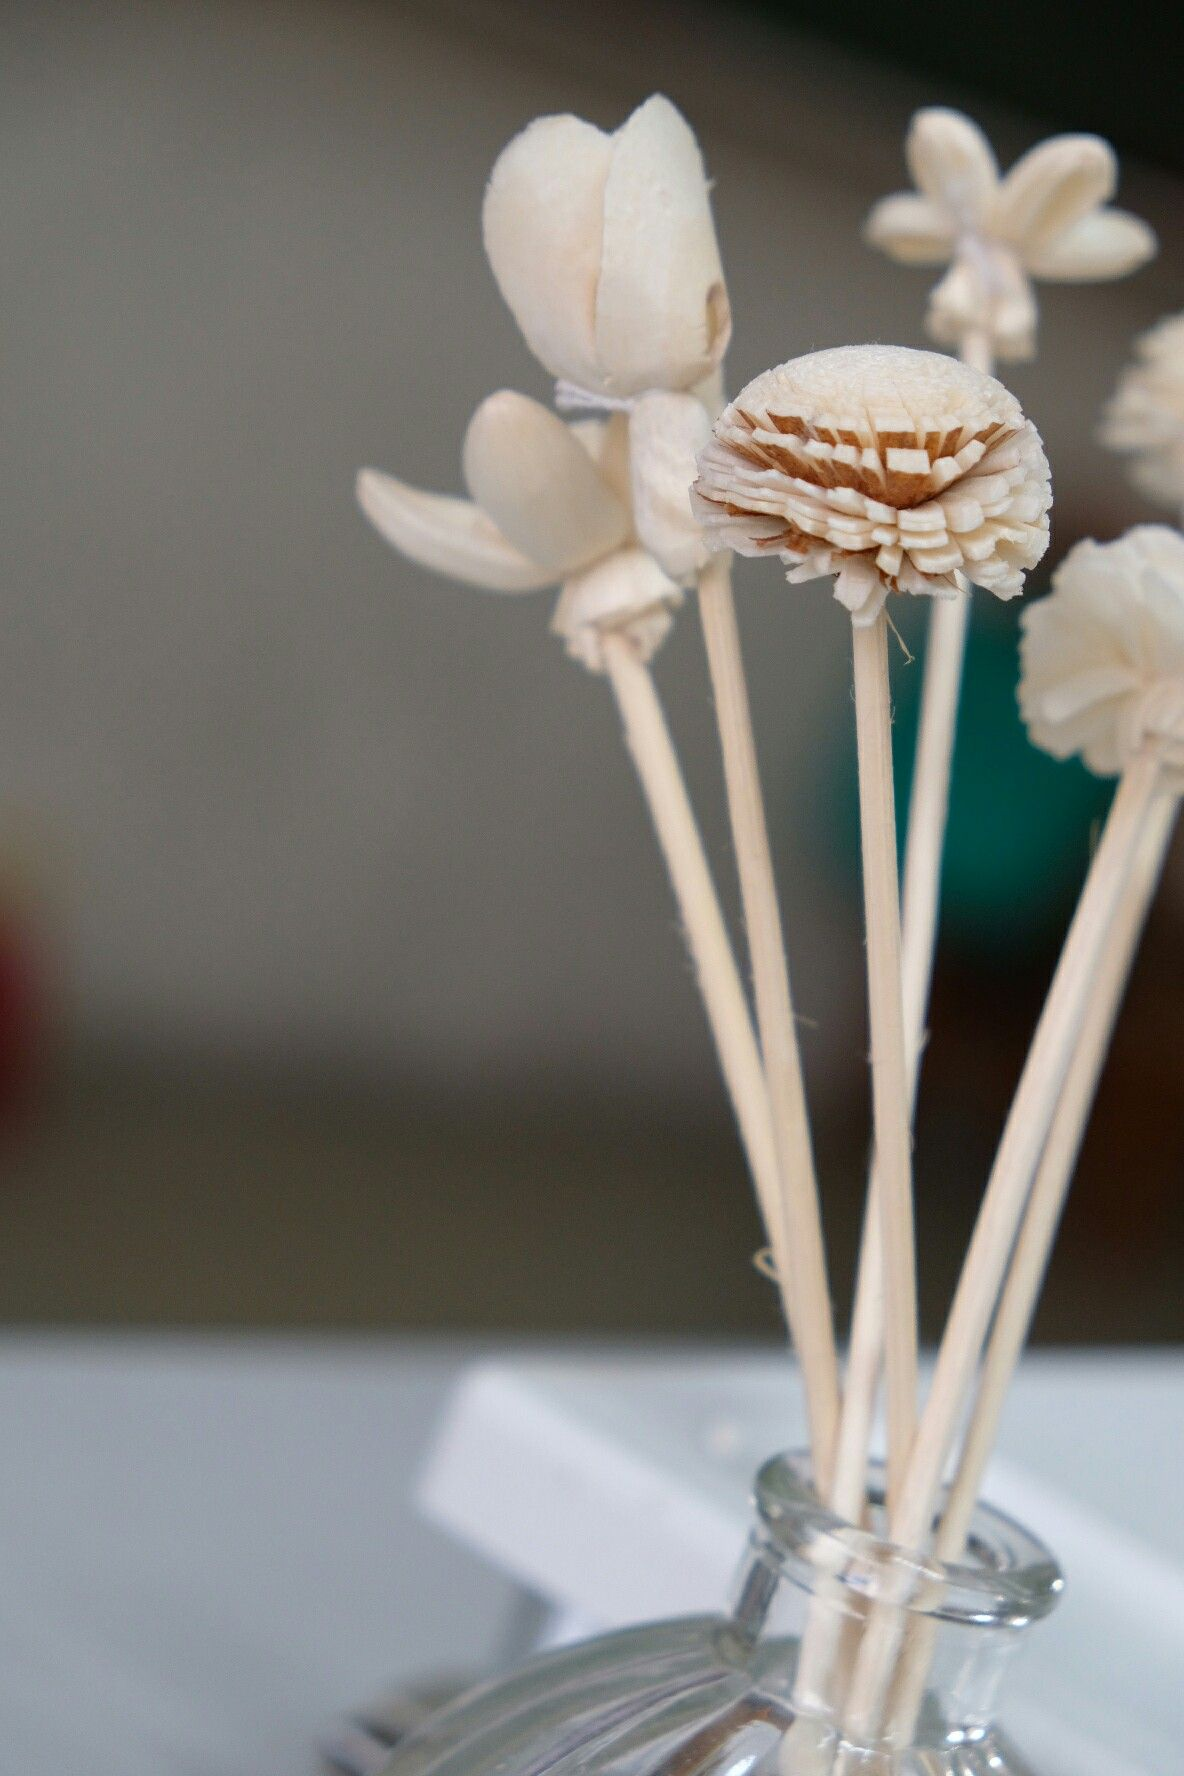 Pin by Joanne Lu on photography Reed diffuser, Diffuser